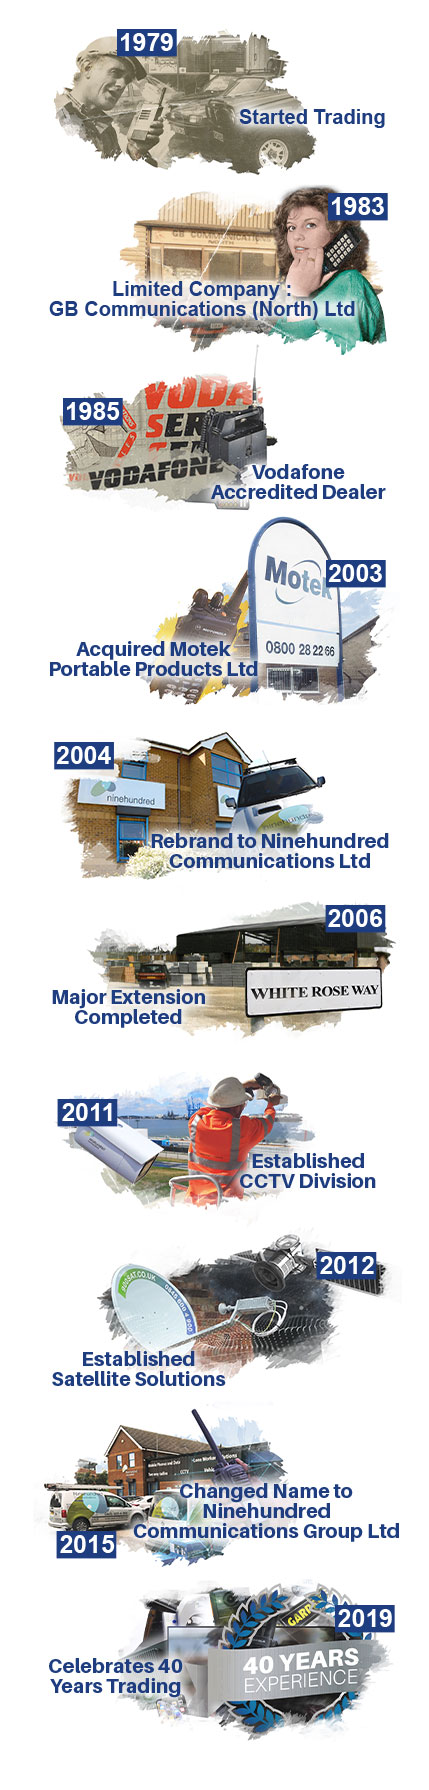 Ninehundred Communications history timeline image